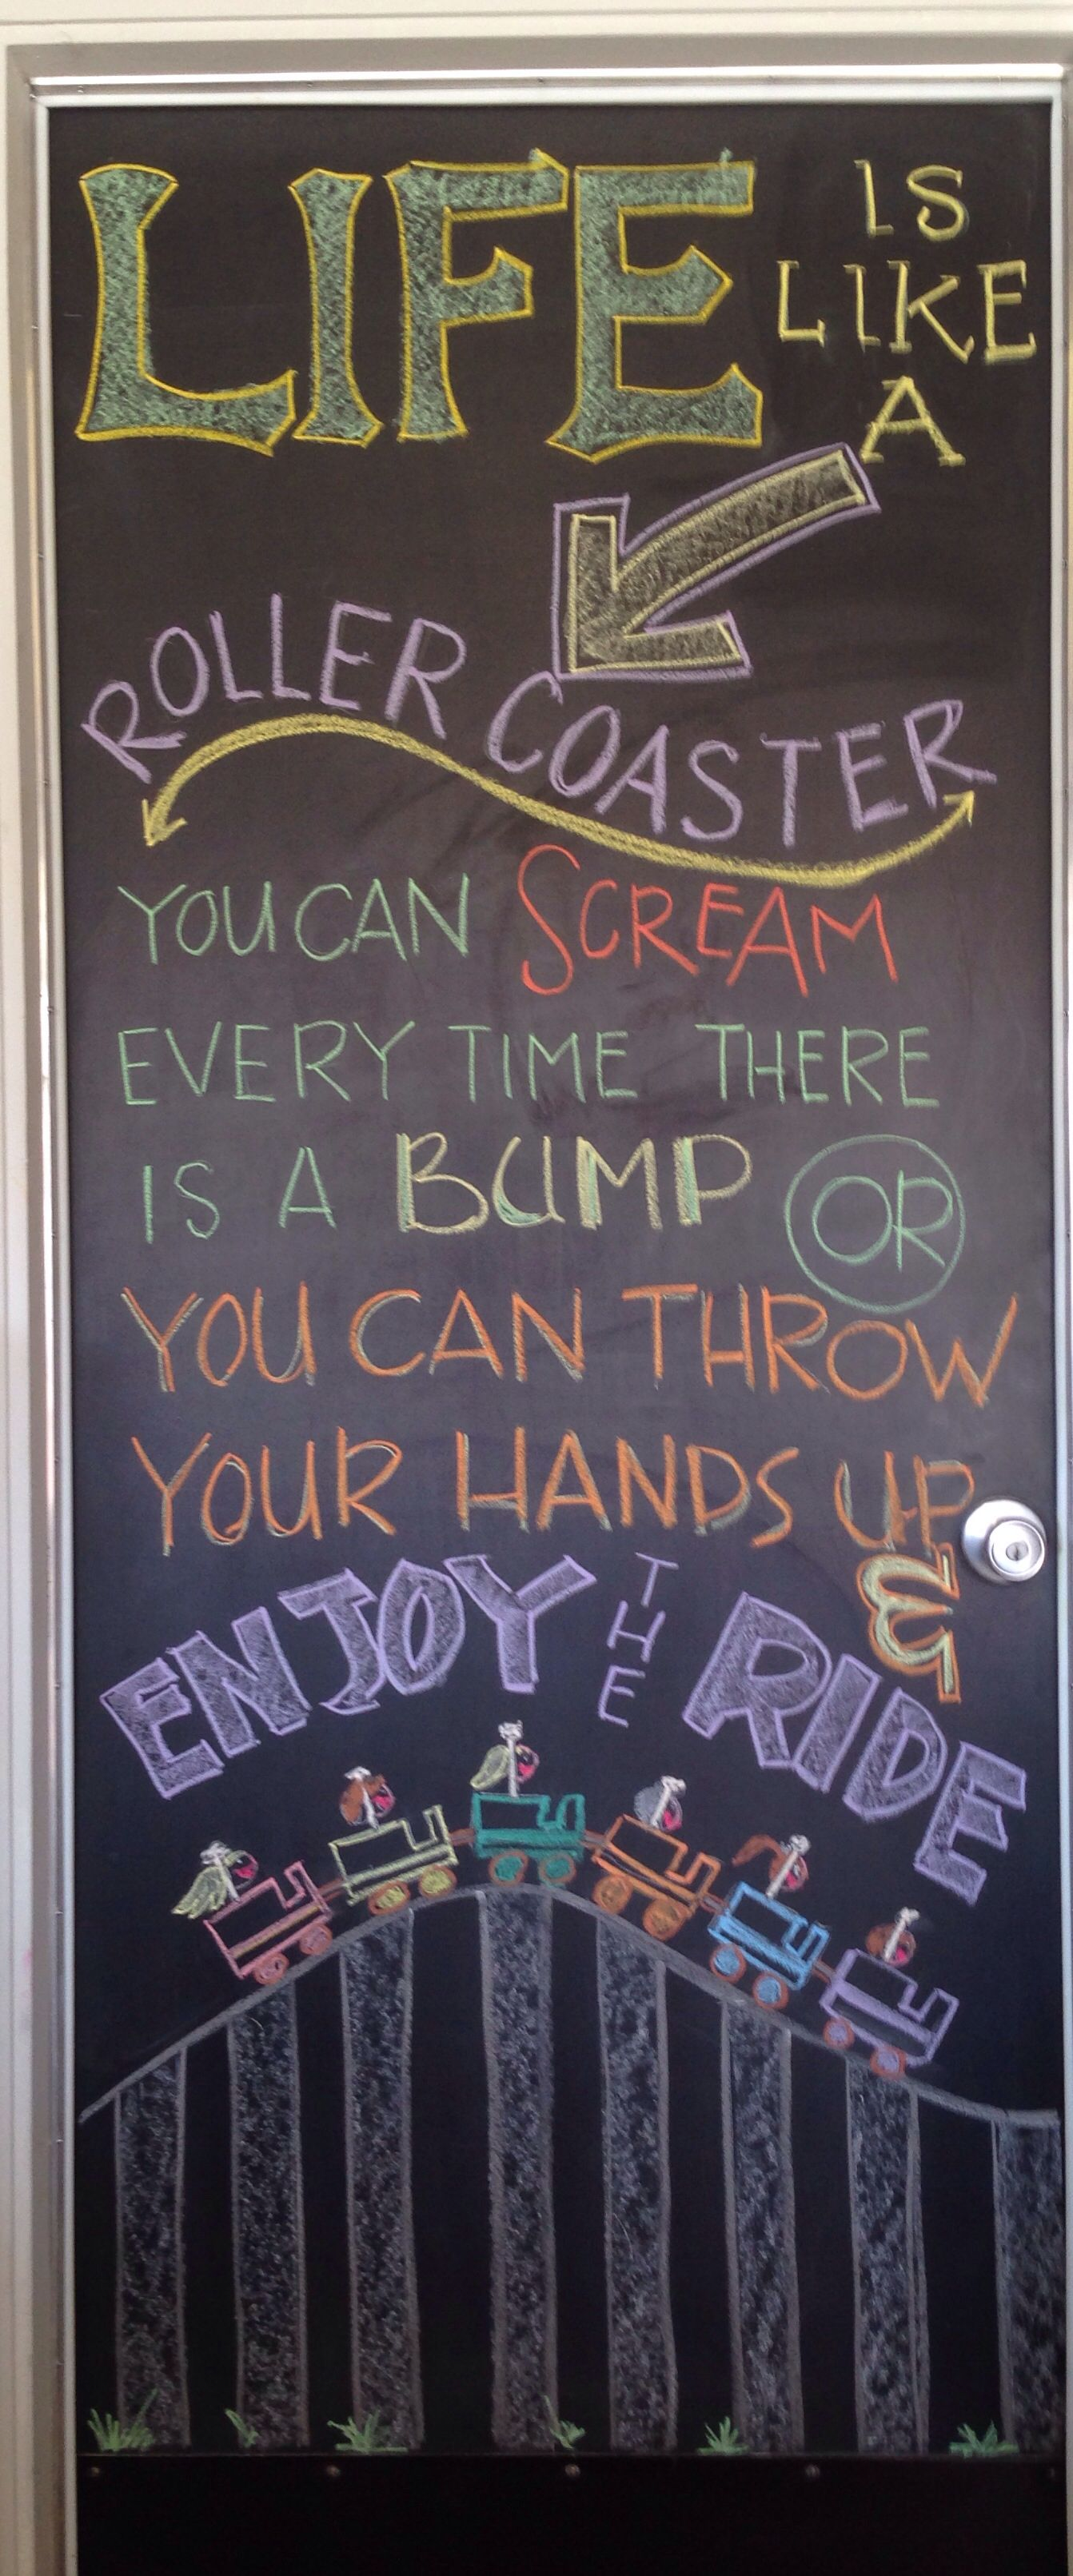 Life is a roller coaster chalkboard art 10-26-13